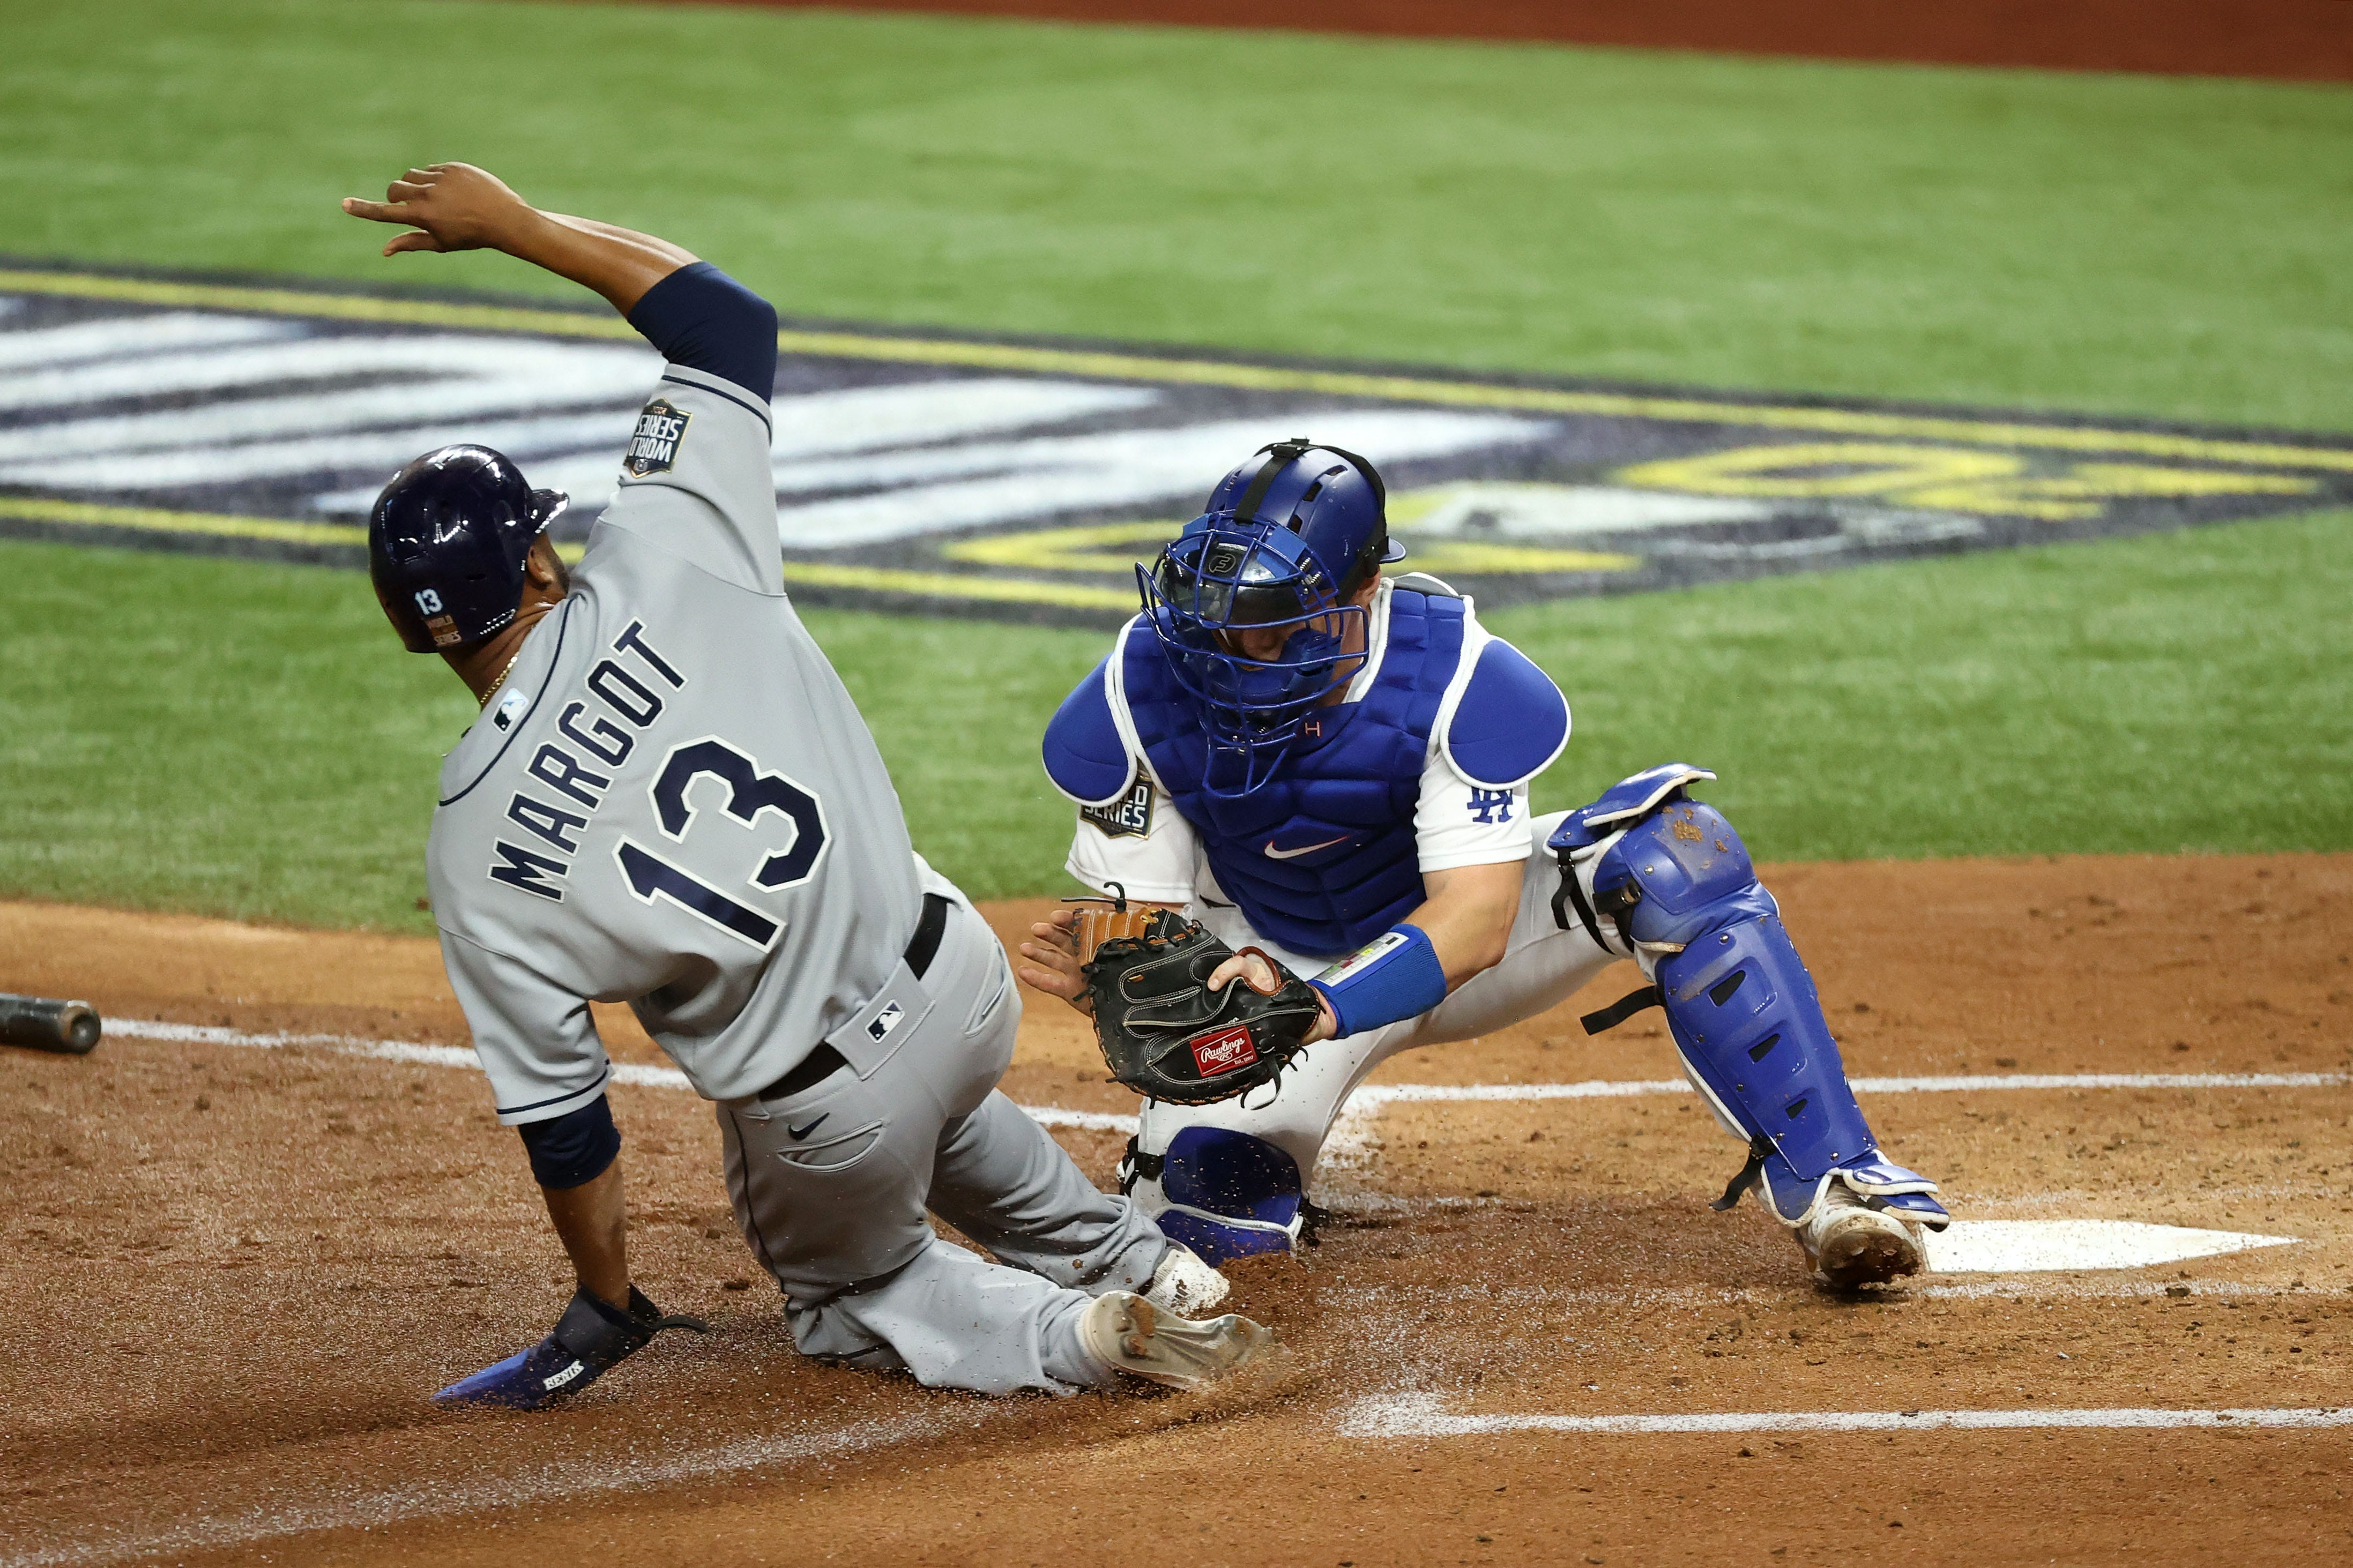 How to watch Dodgers vs. Rays: World Series Game 3 live stream, schedule, TV channel, start time